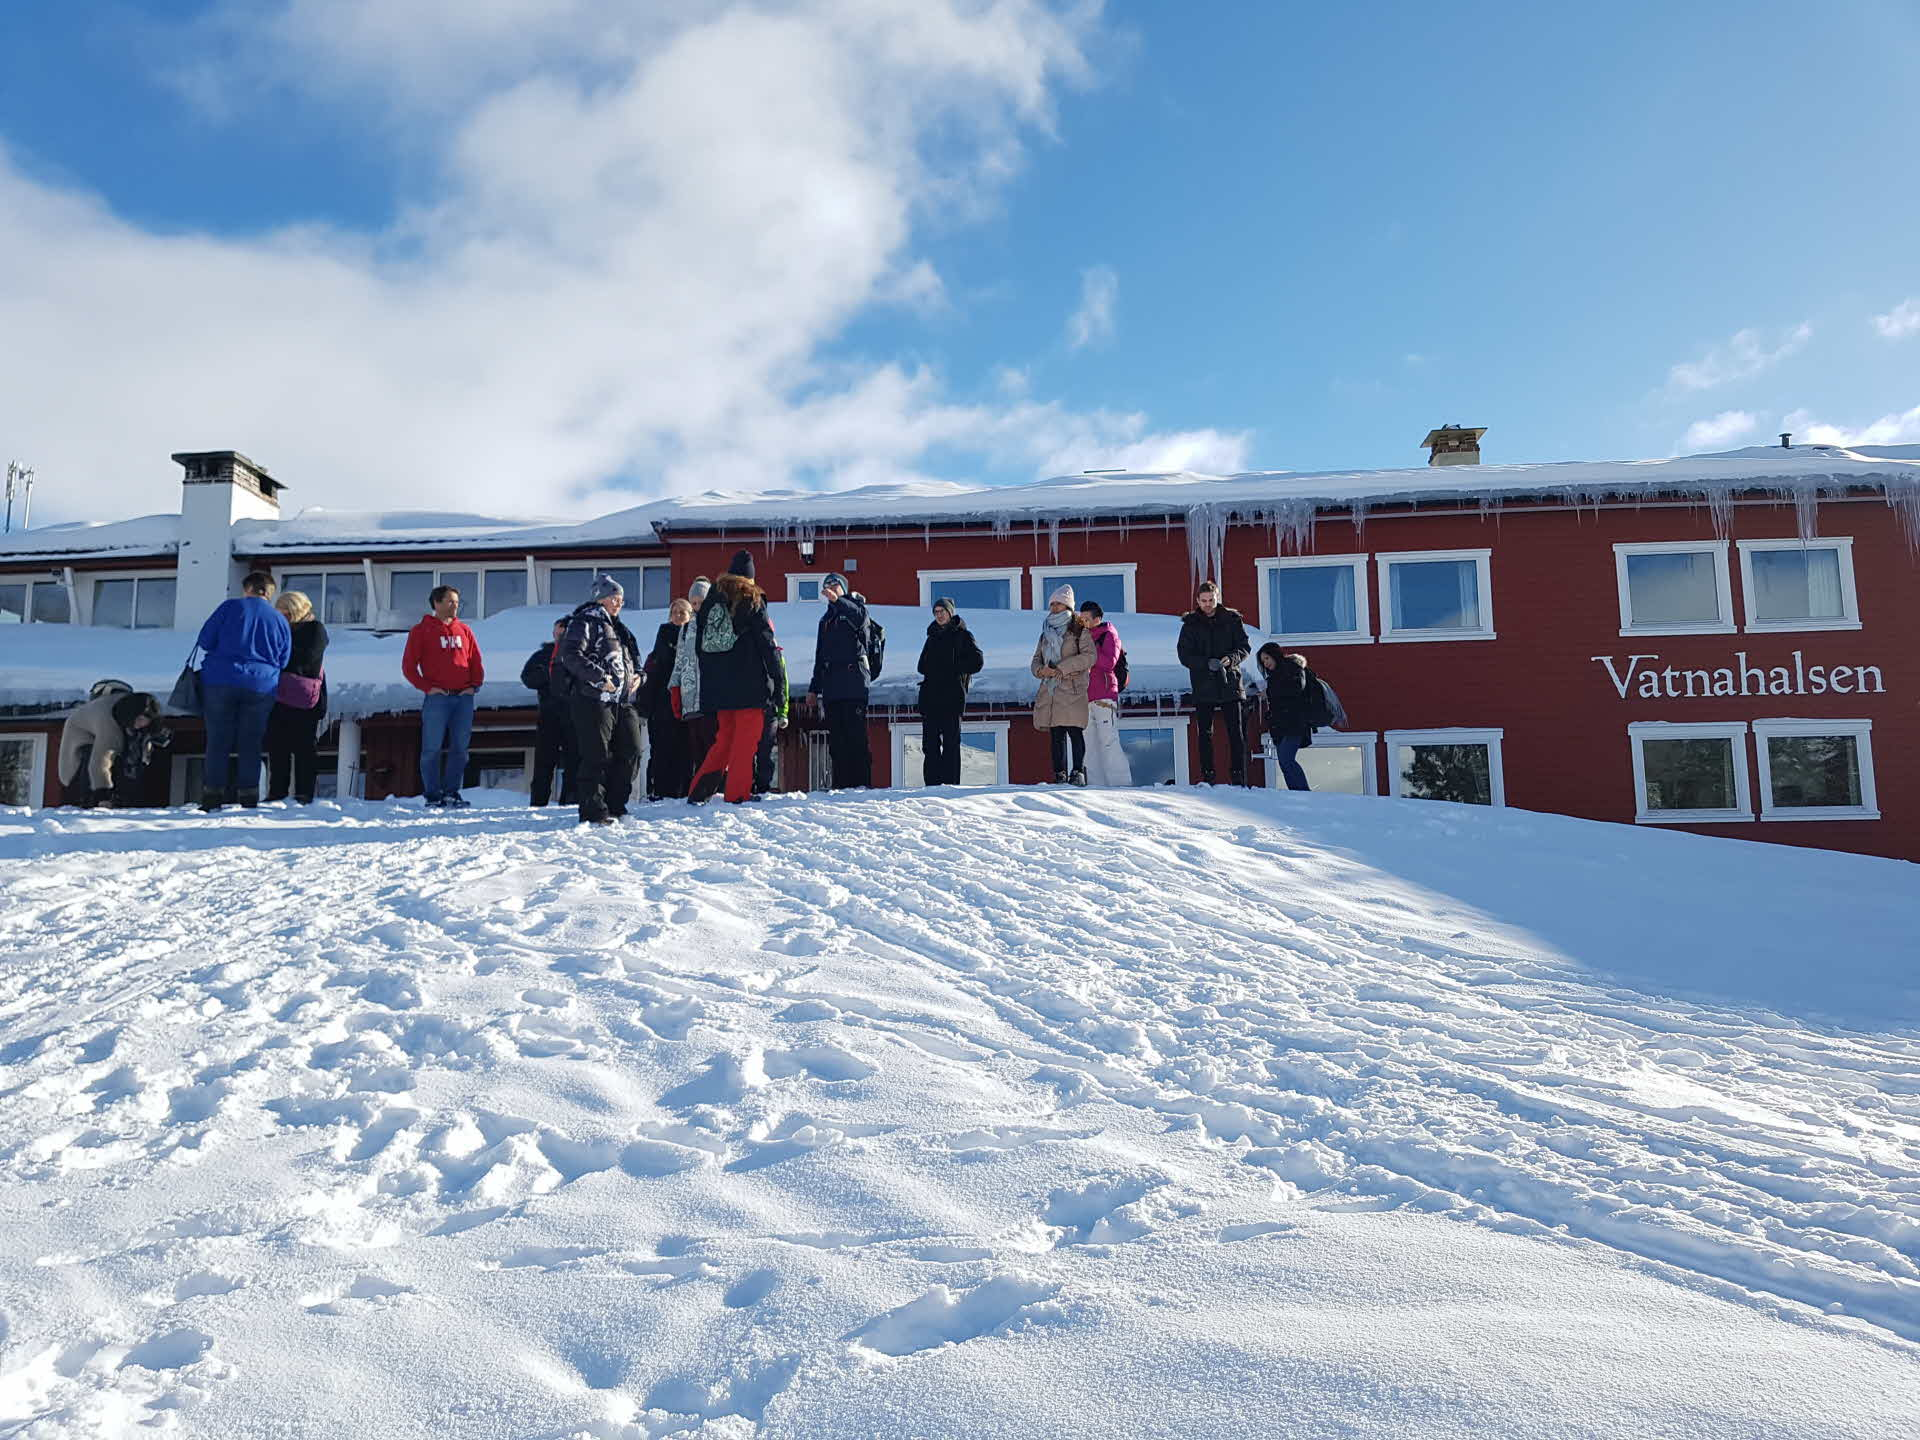 Group of people in winter clothing in front of Vatnahalsen Hotel on a sunny winter day. Long Icicle hanging from roof.